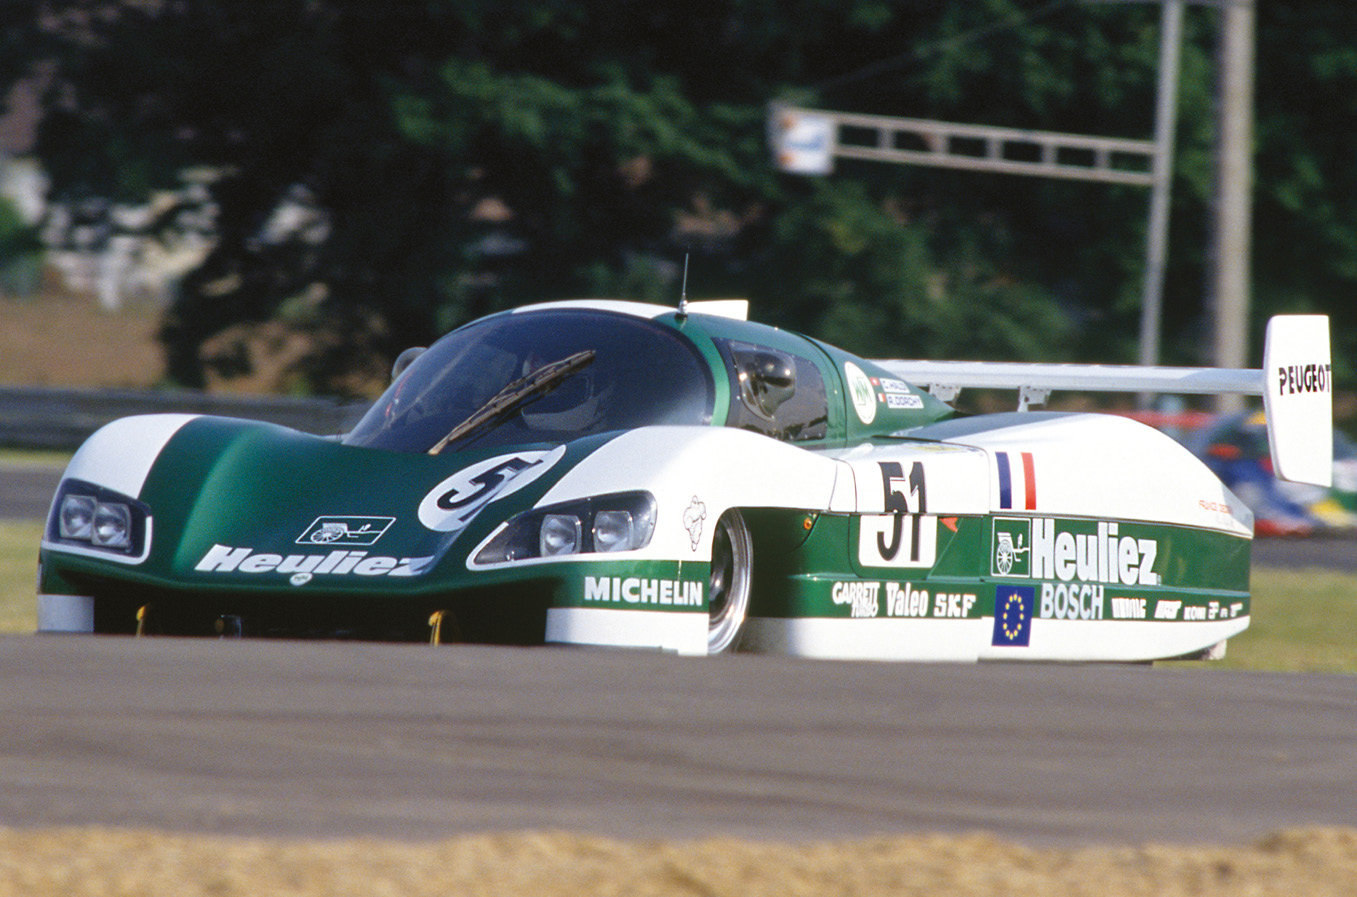 Winning the race didn't really matter to WM, but breaking 250mph did. Dorchy hit 251.7mph in 1988